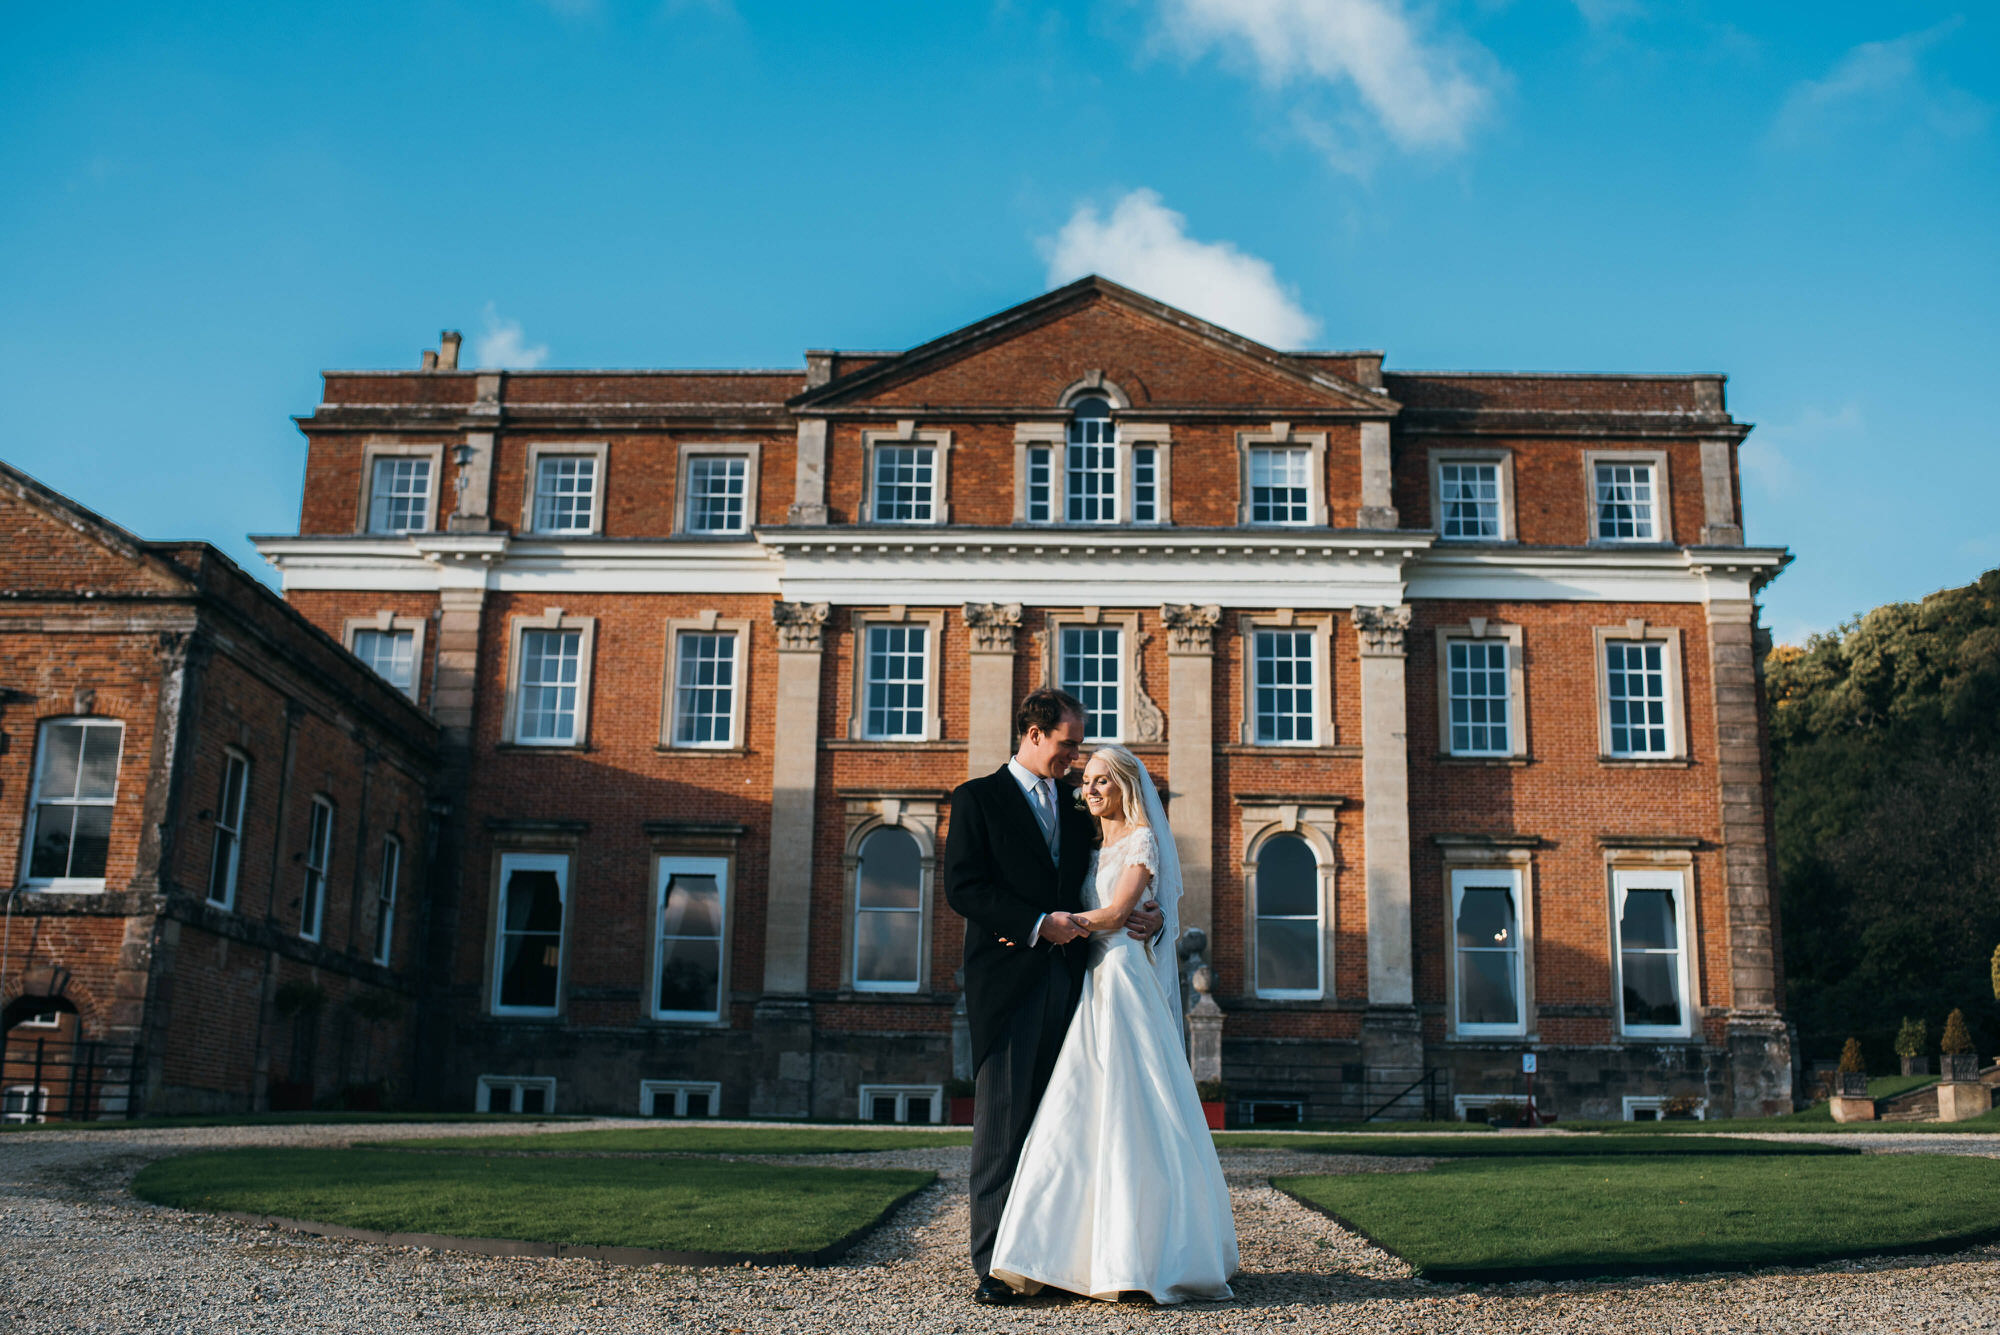 Crowcombe court wedding photographer